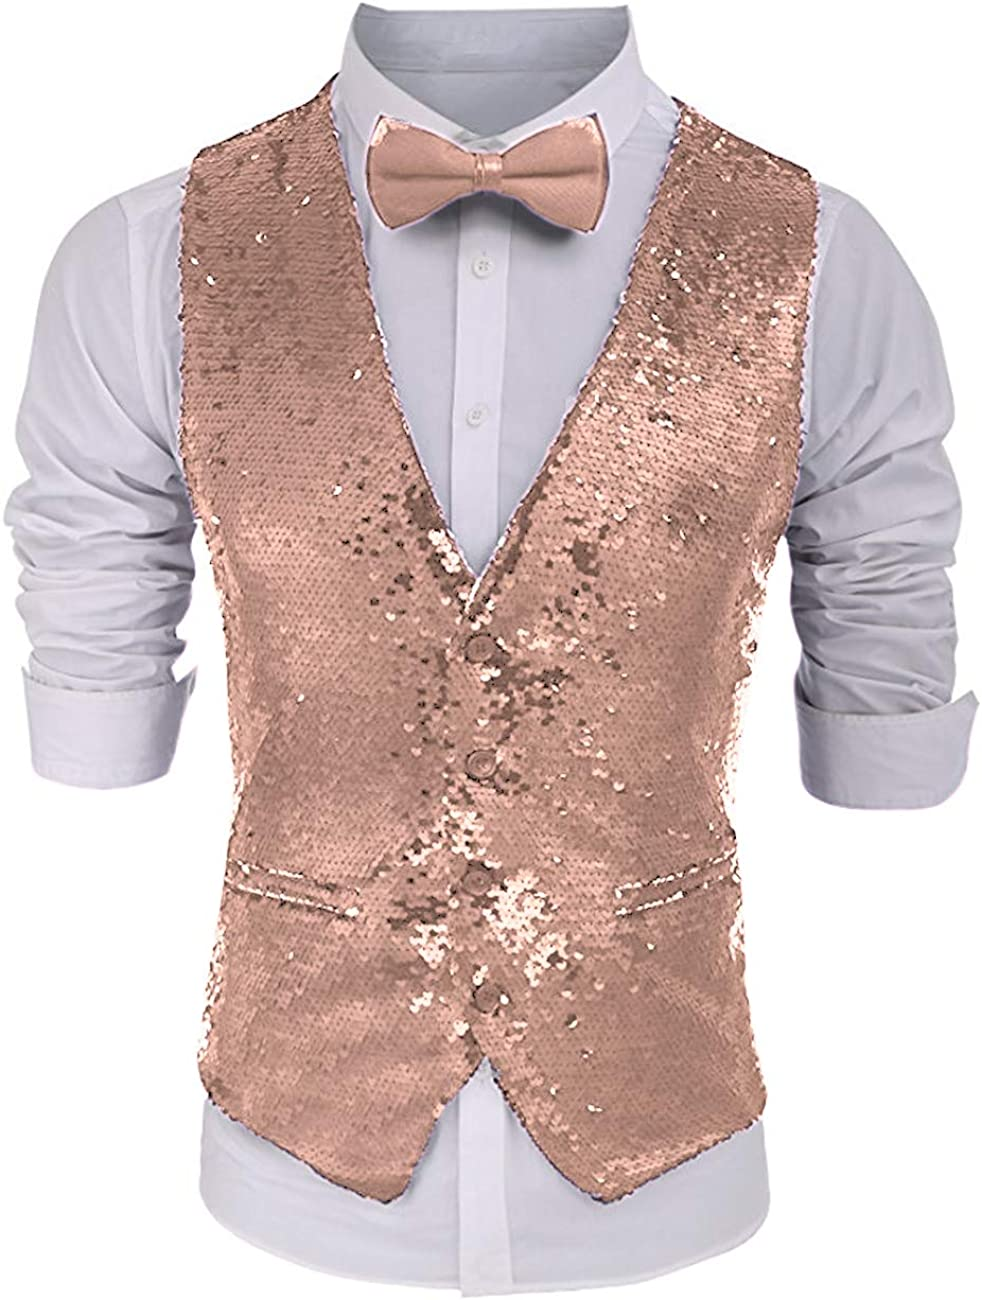 Suxiaoxi Bombing free shipping Men's Shining Sequins Nightclub with Bow Waistcoat Finally popular brand Tie